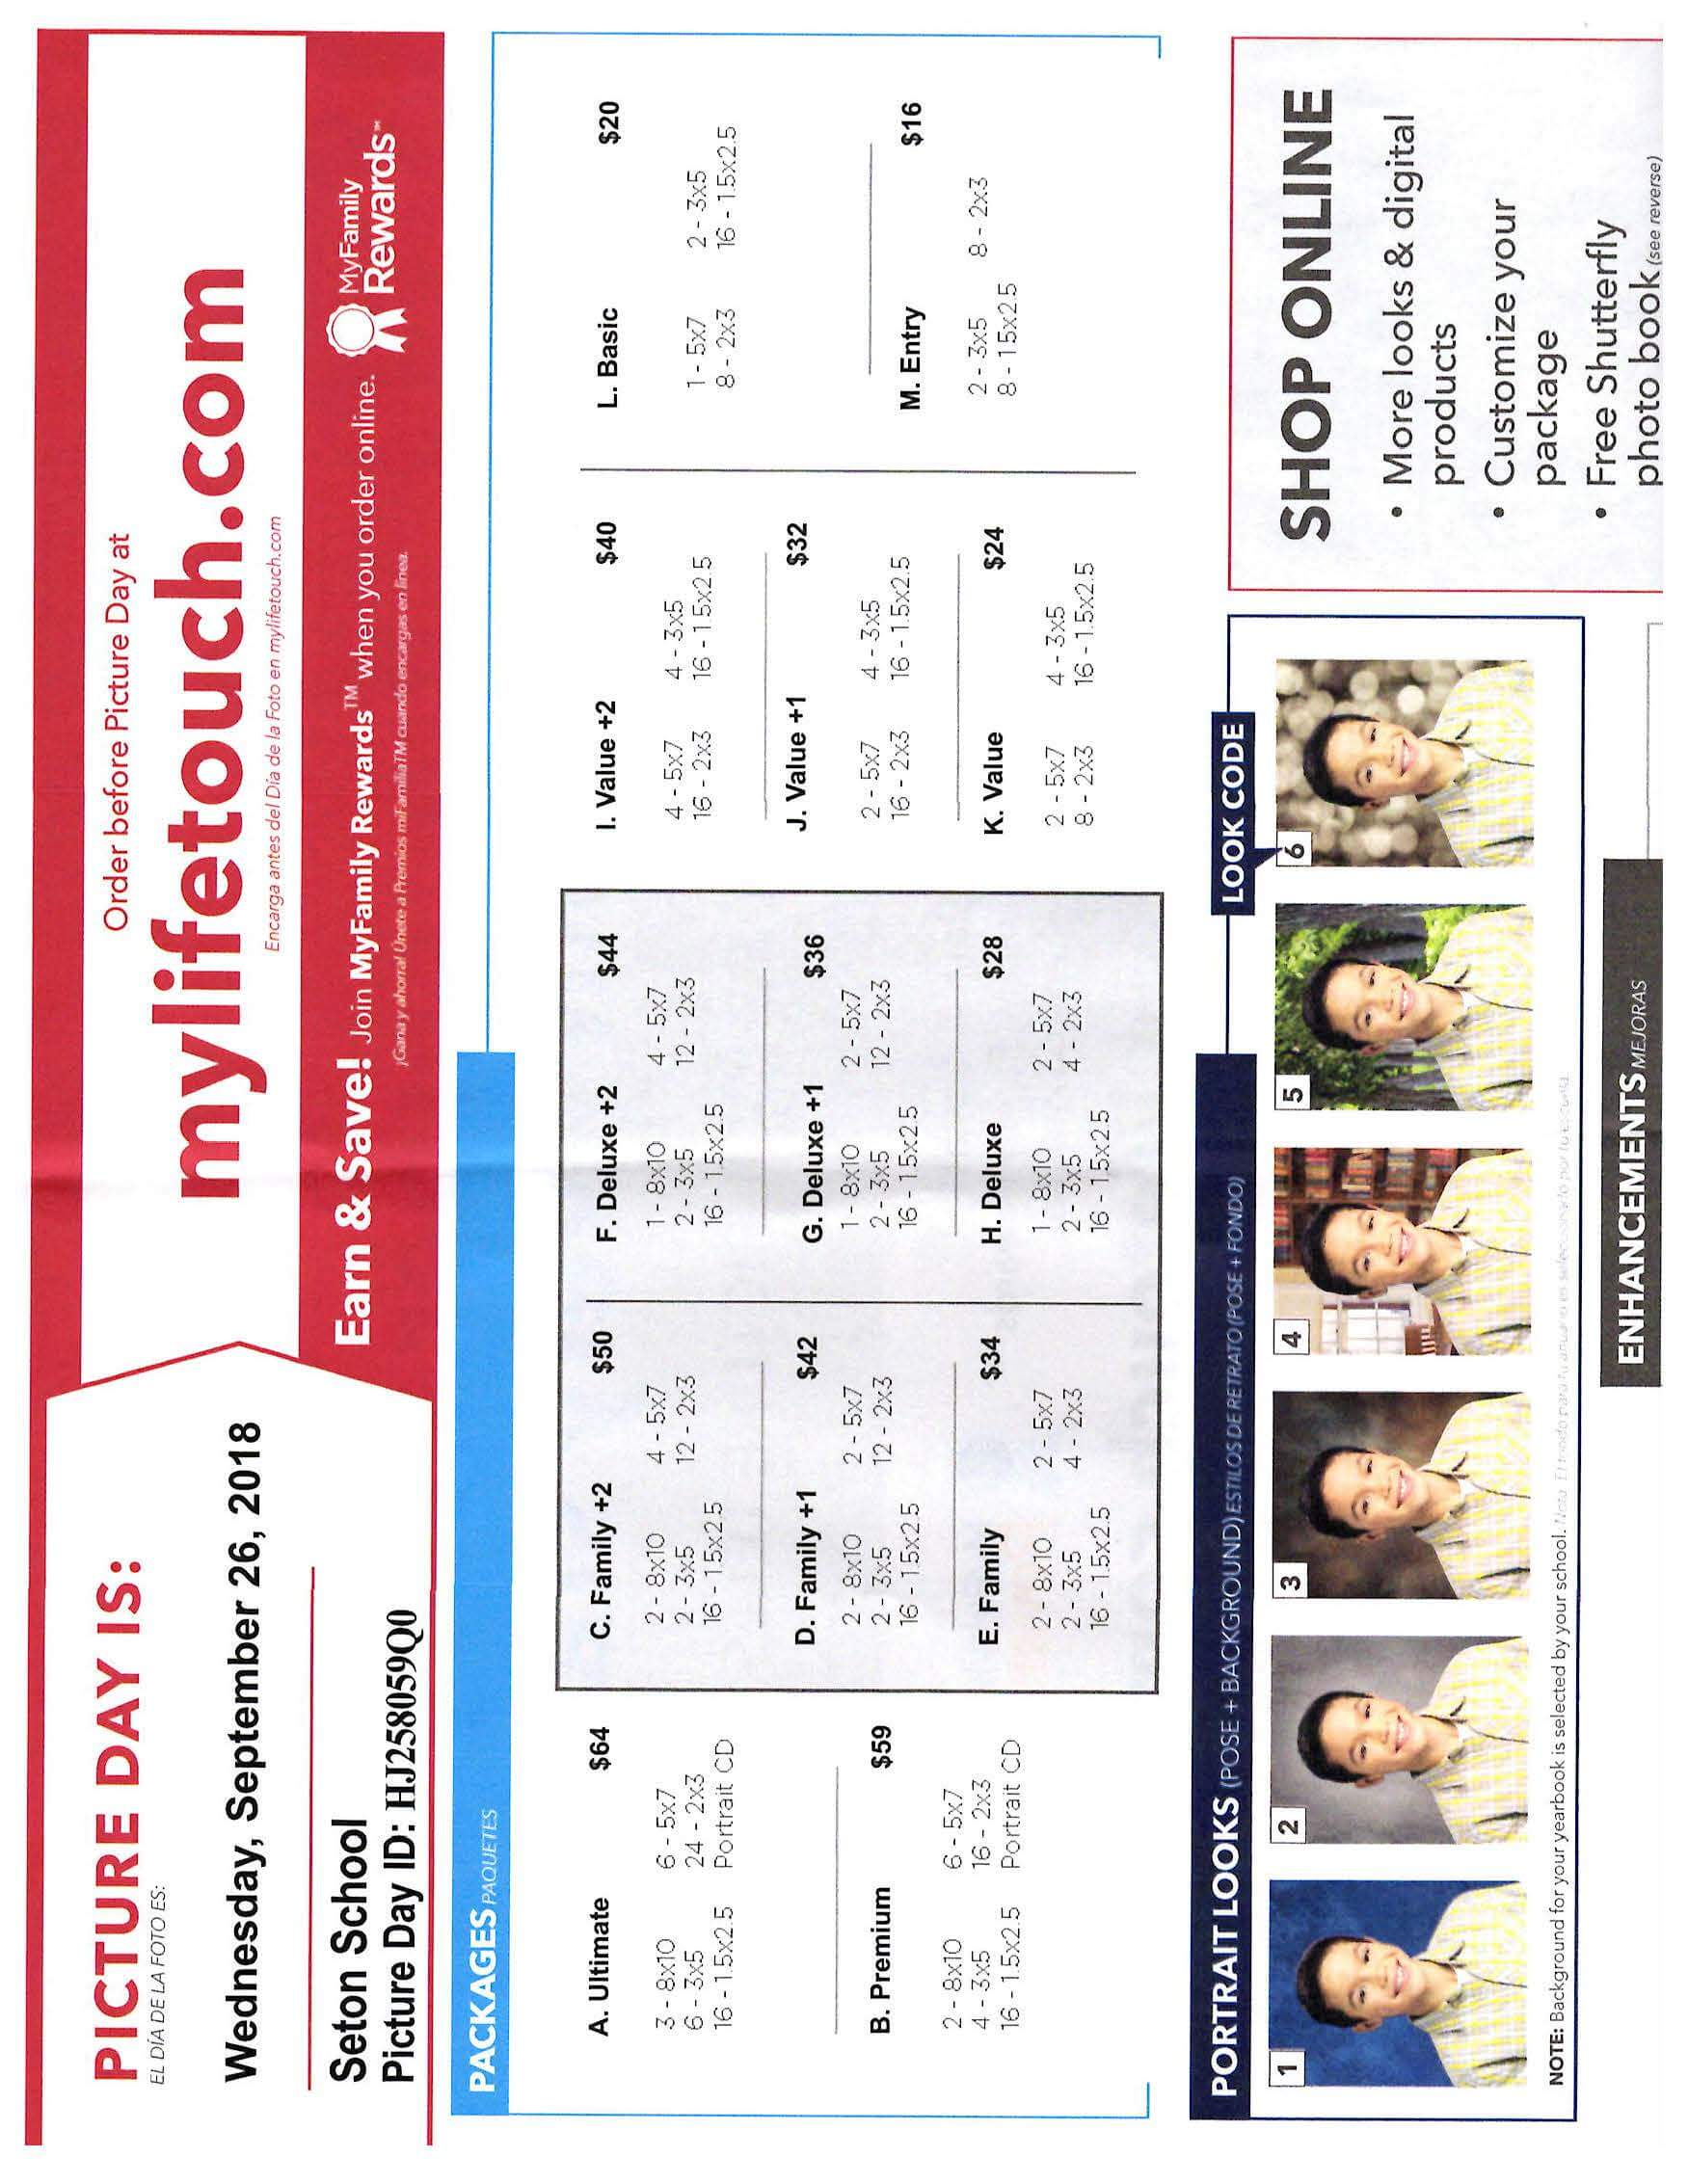 picture day lifetouch order form page 1 seton school manassas